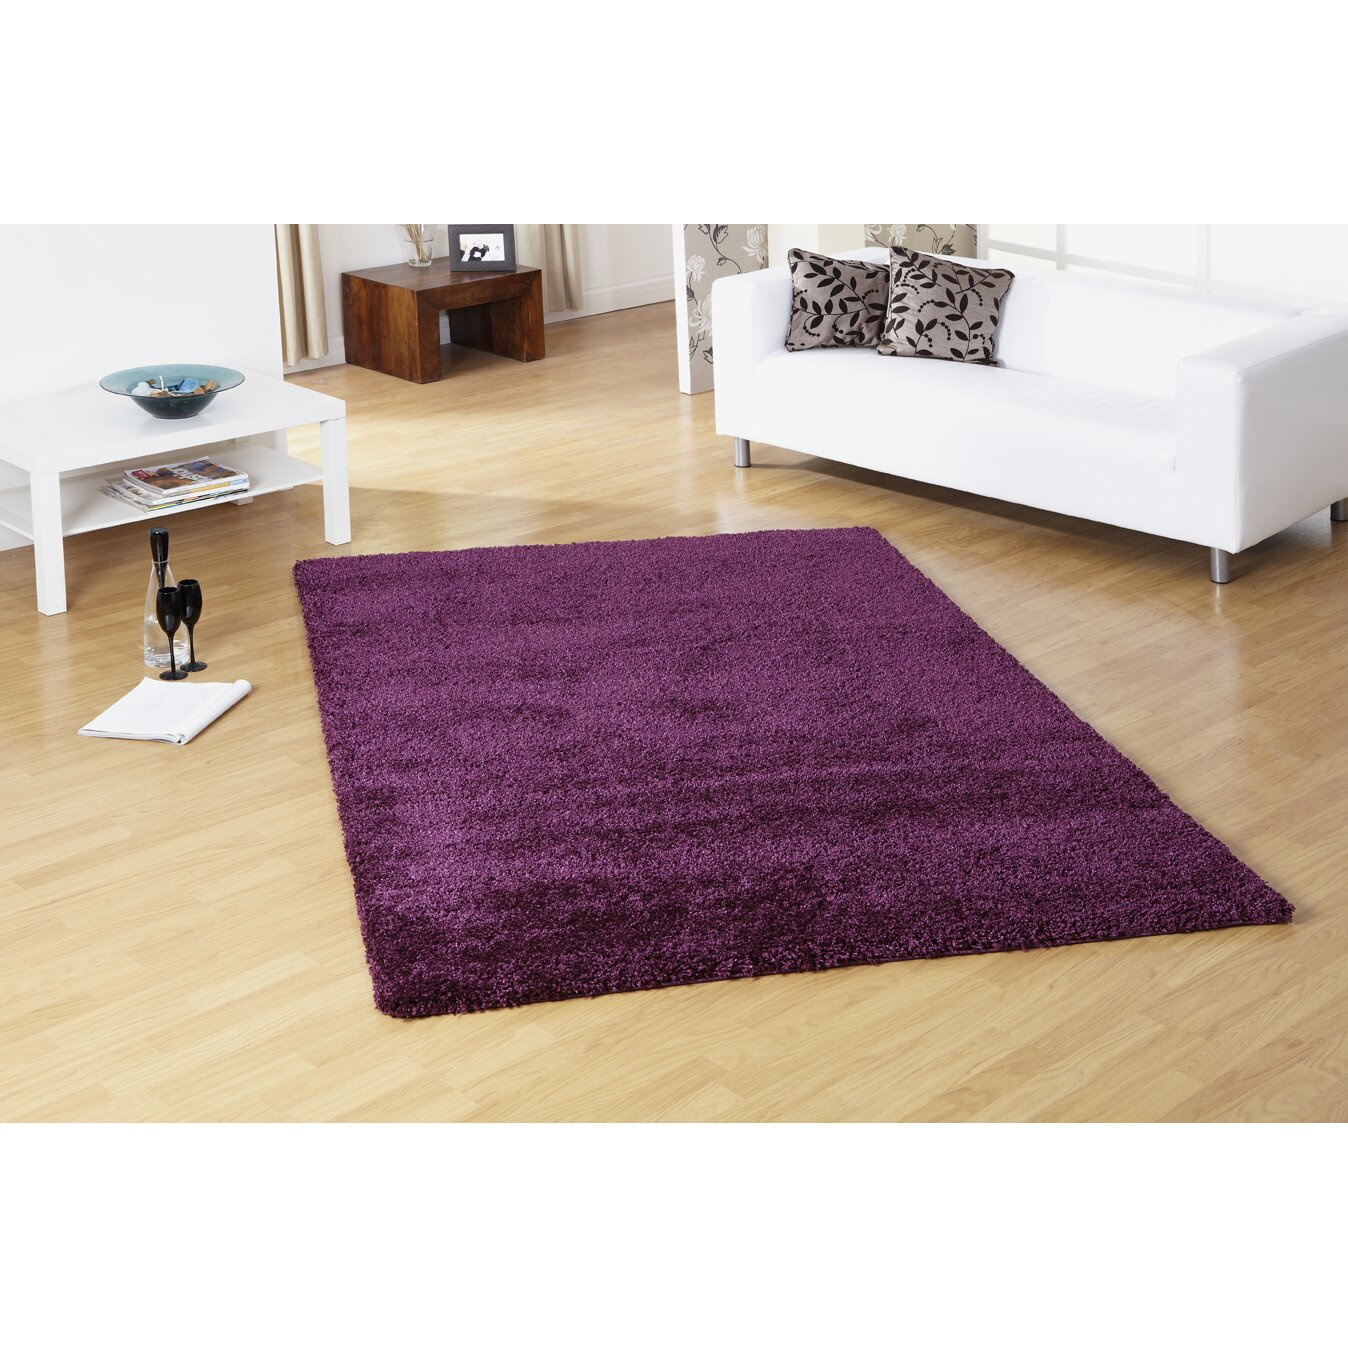 Ultimate Rug Co Lifestyle Plain Aubergine Rug & Reviews